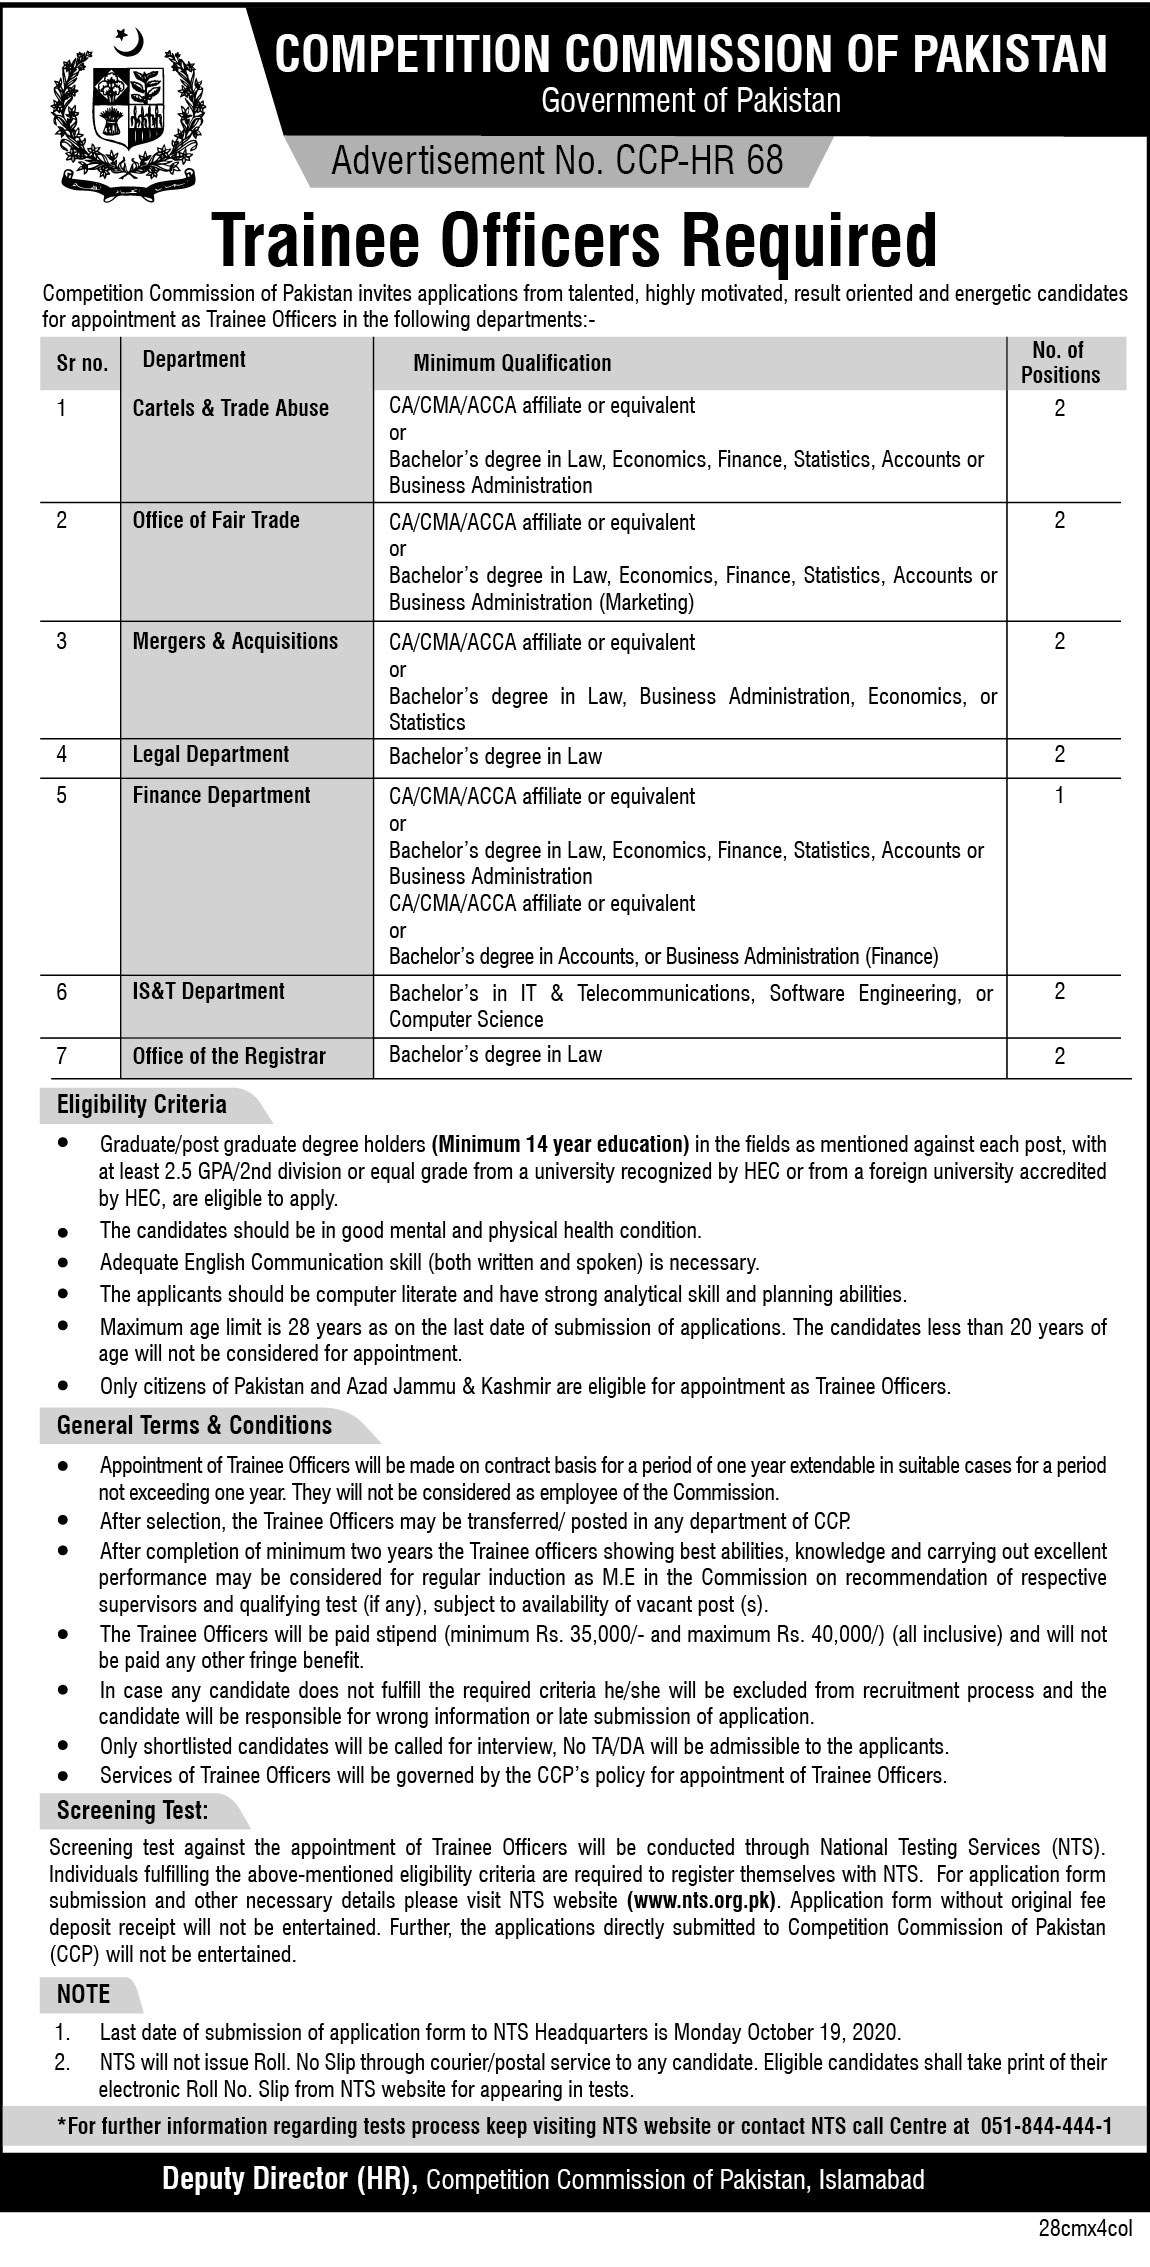 Competition Commission Of Pakistan Trainee Officer Jobs NTS Roll No Slip